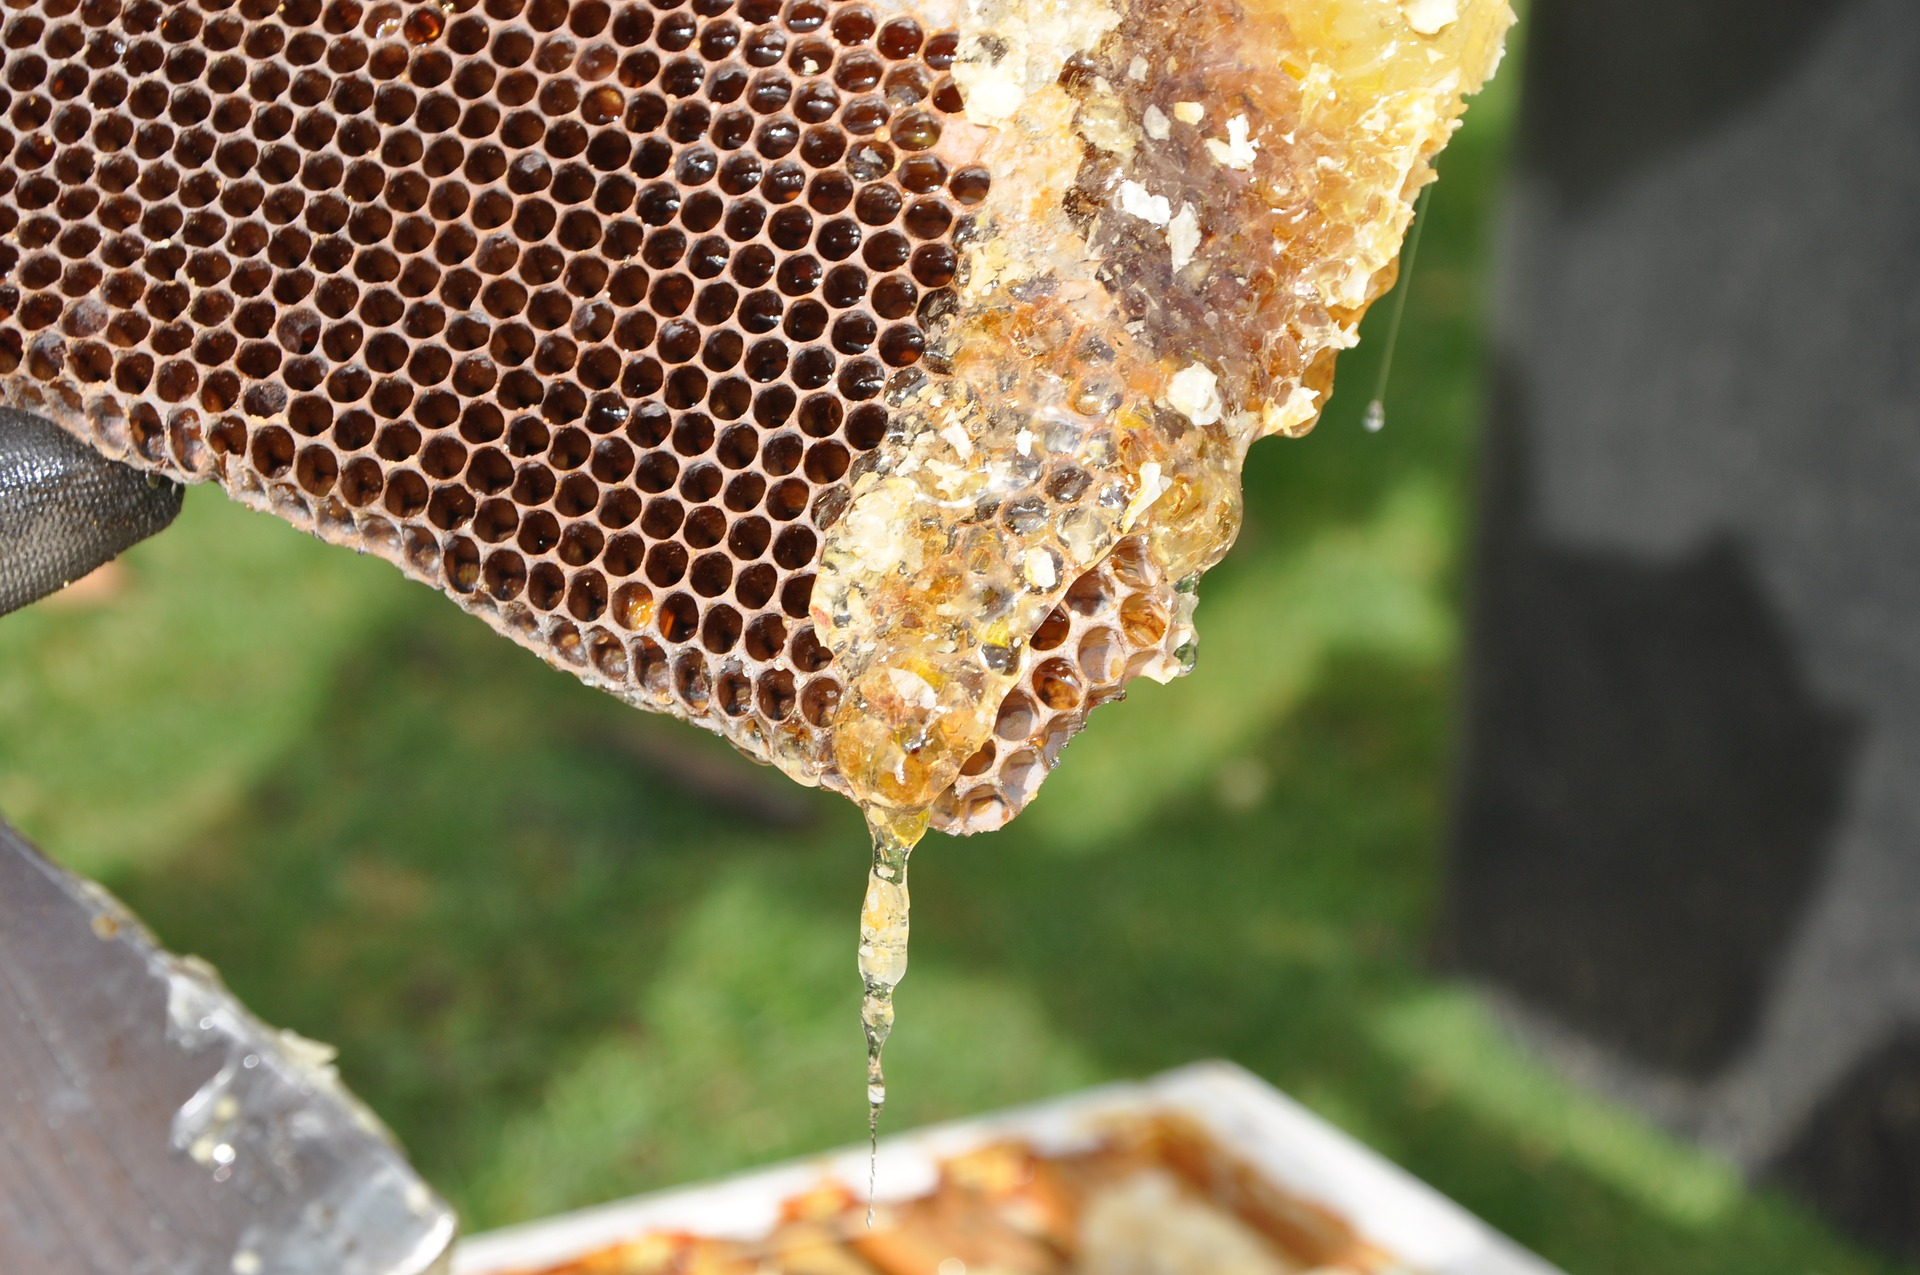 raw-honey-comb-reston-farm-market-va.jpg